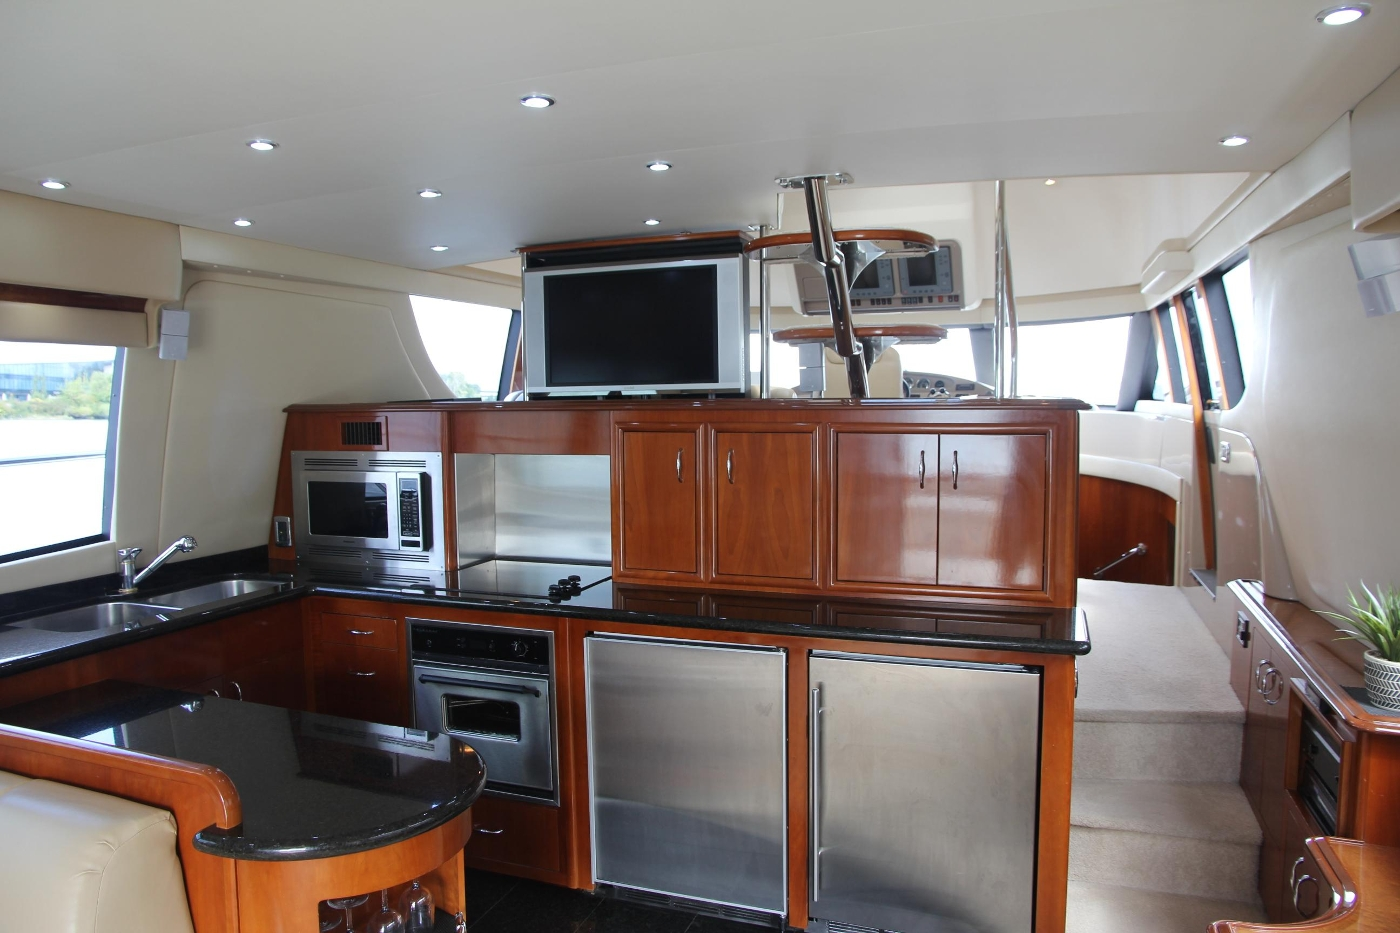 2005 Carver 560 Voyager Pilothouse, Salon Forward with TV Lift